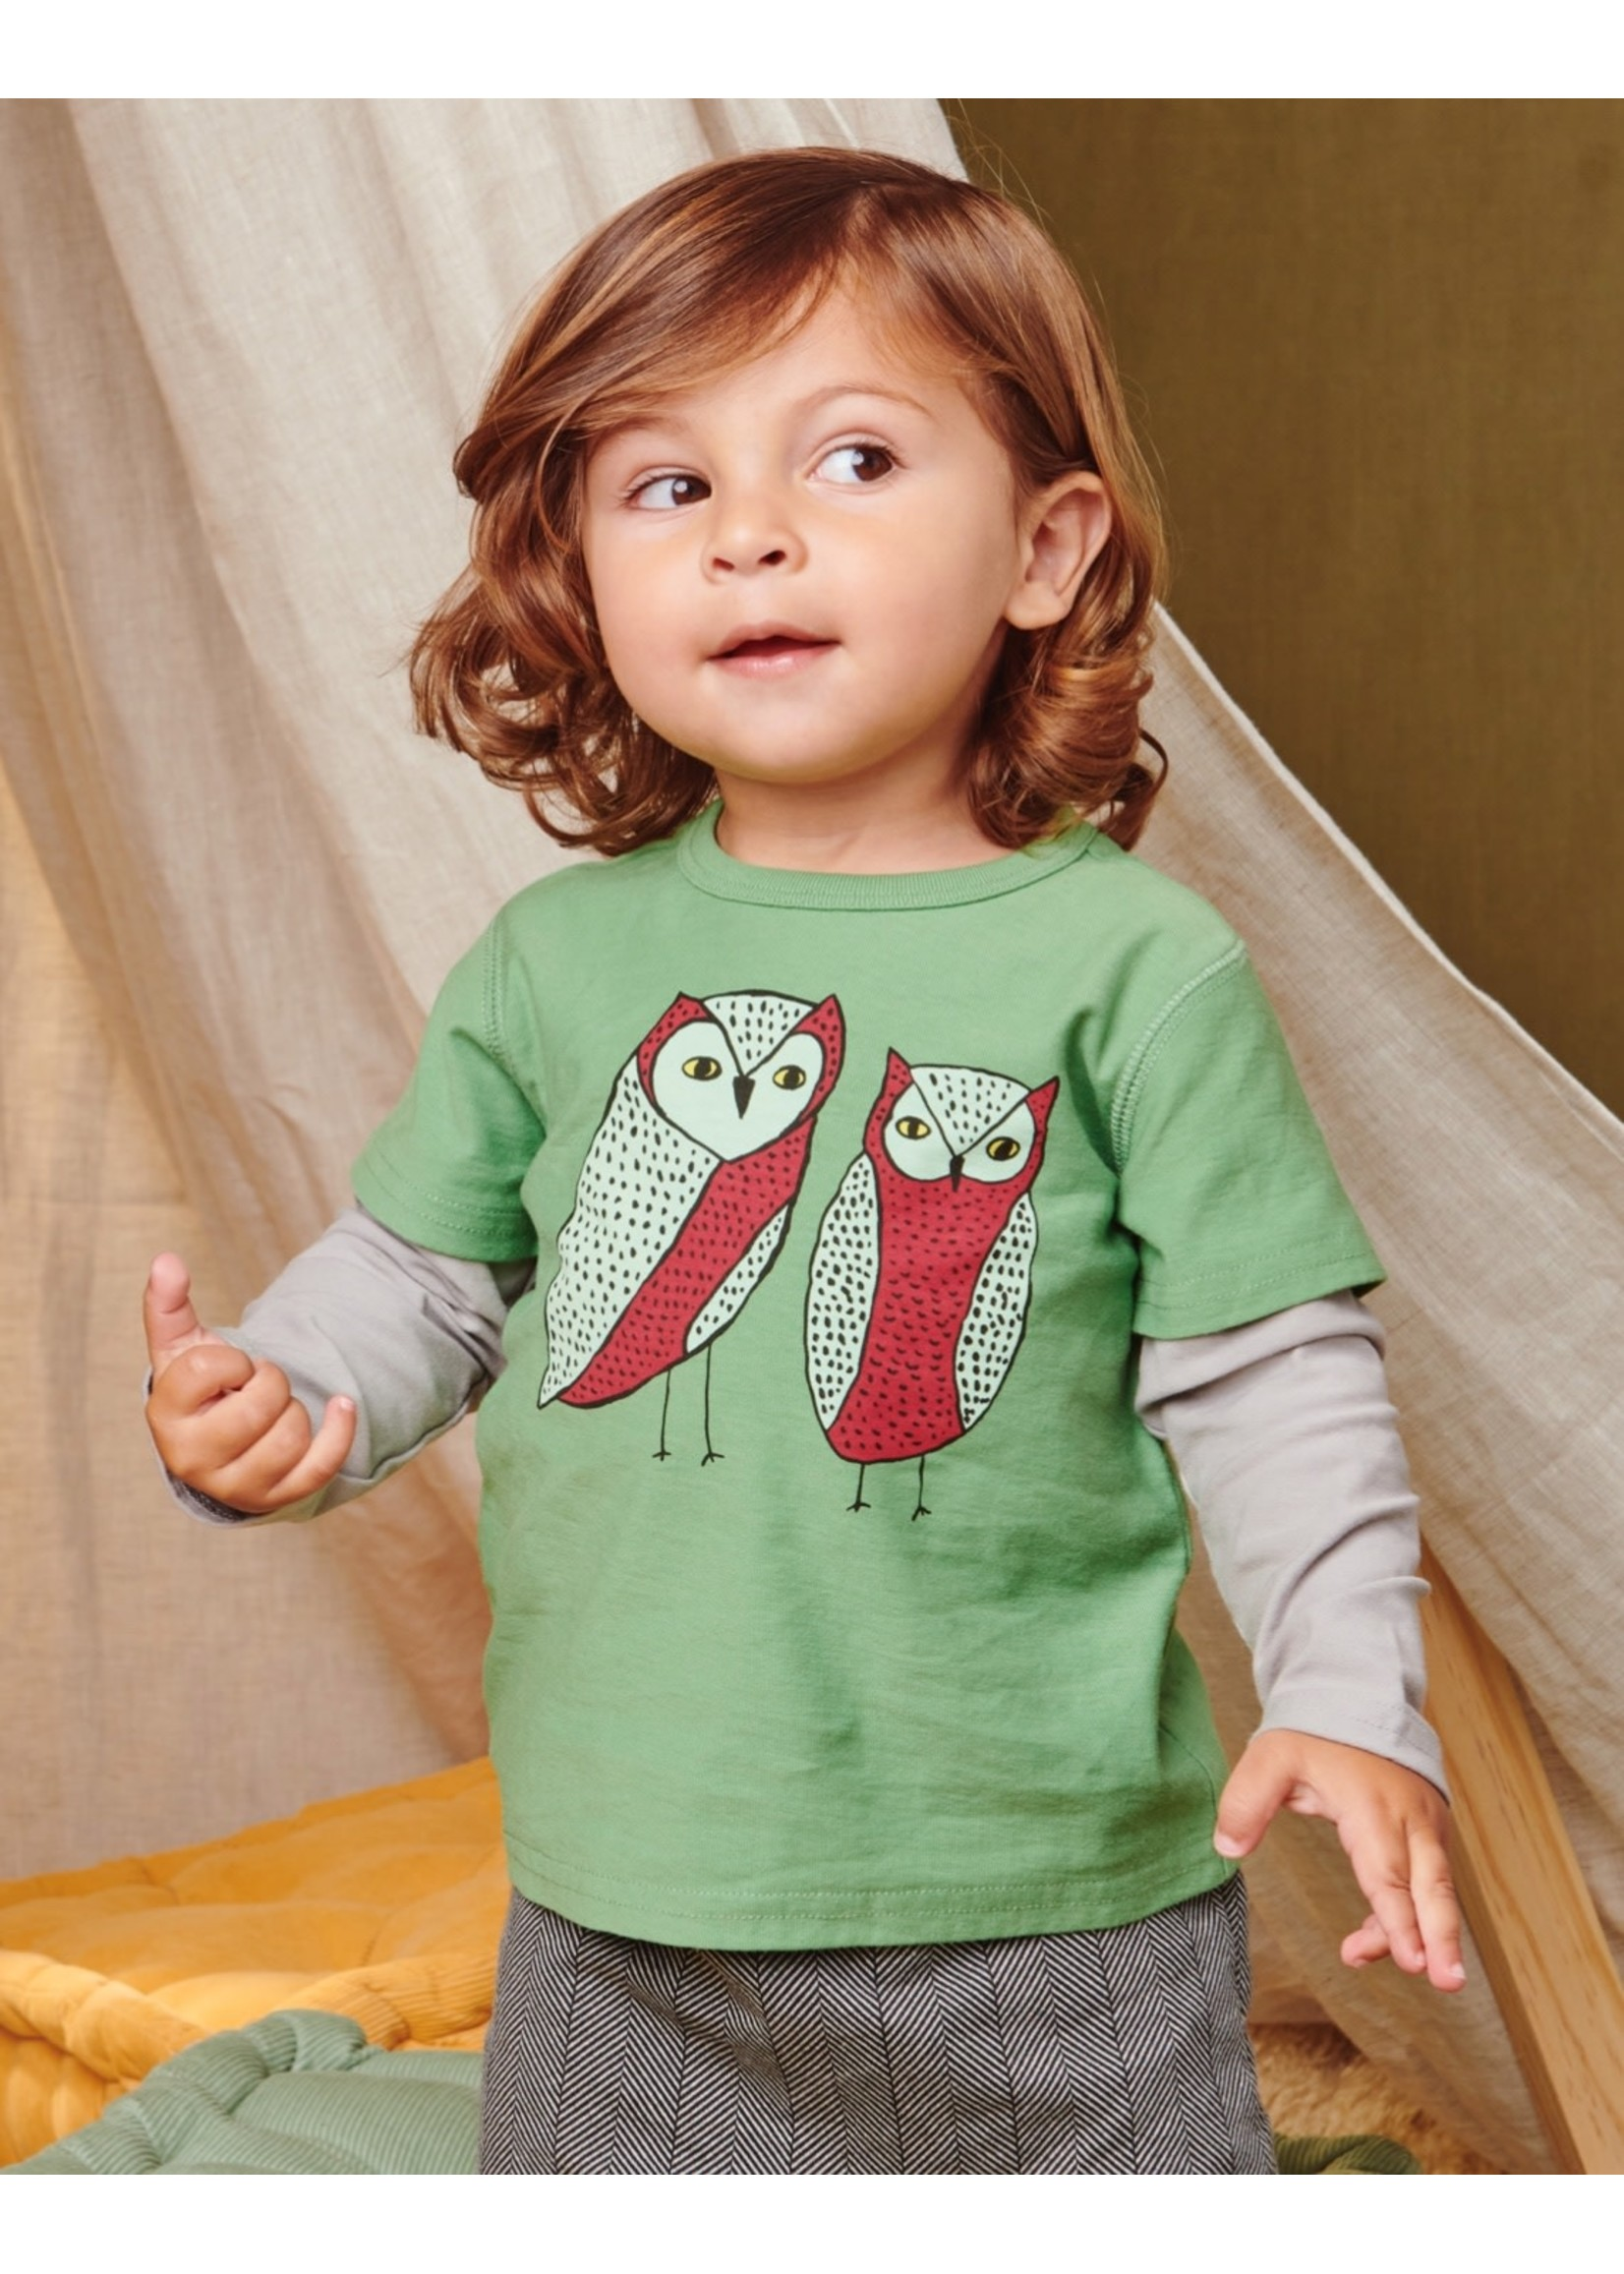 Tea Collection Tea Collection, Owl Friends Baby Graphic Tee in English Ivy